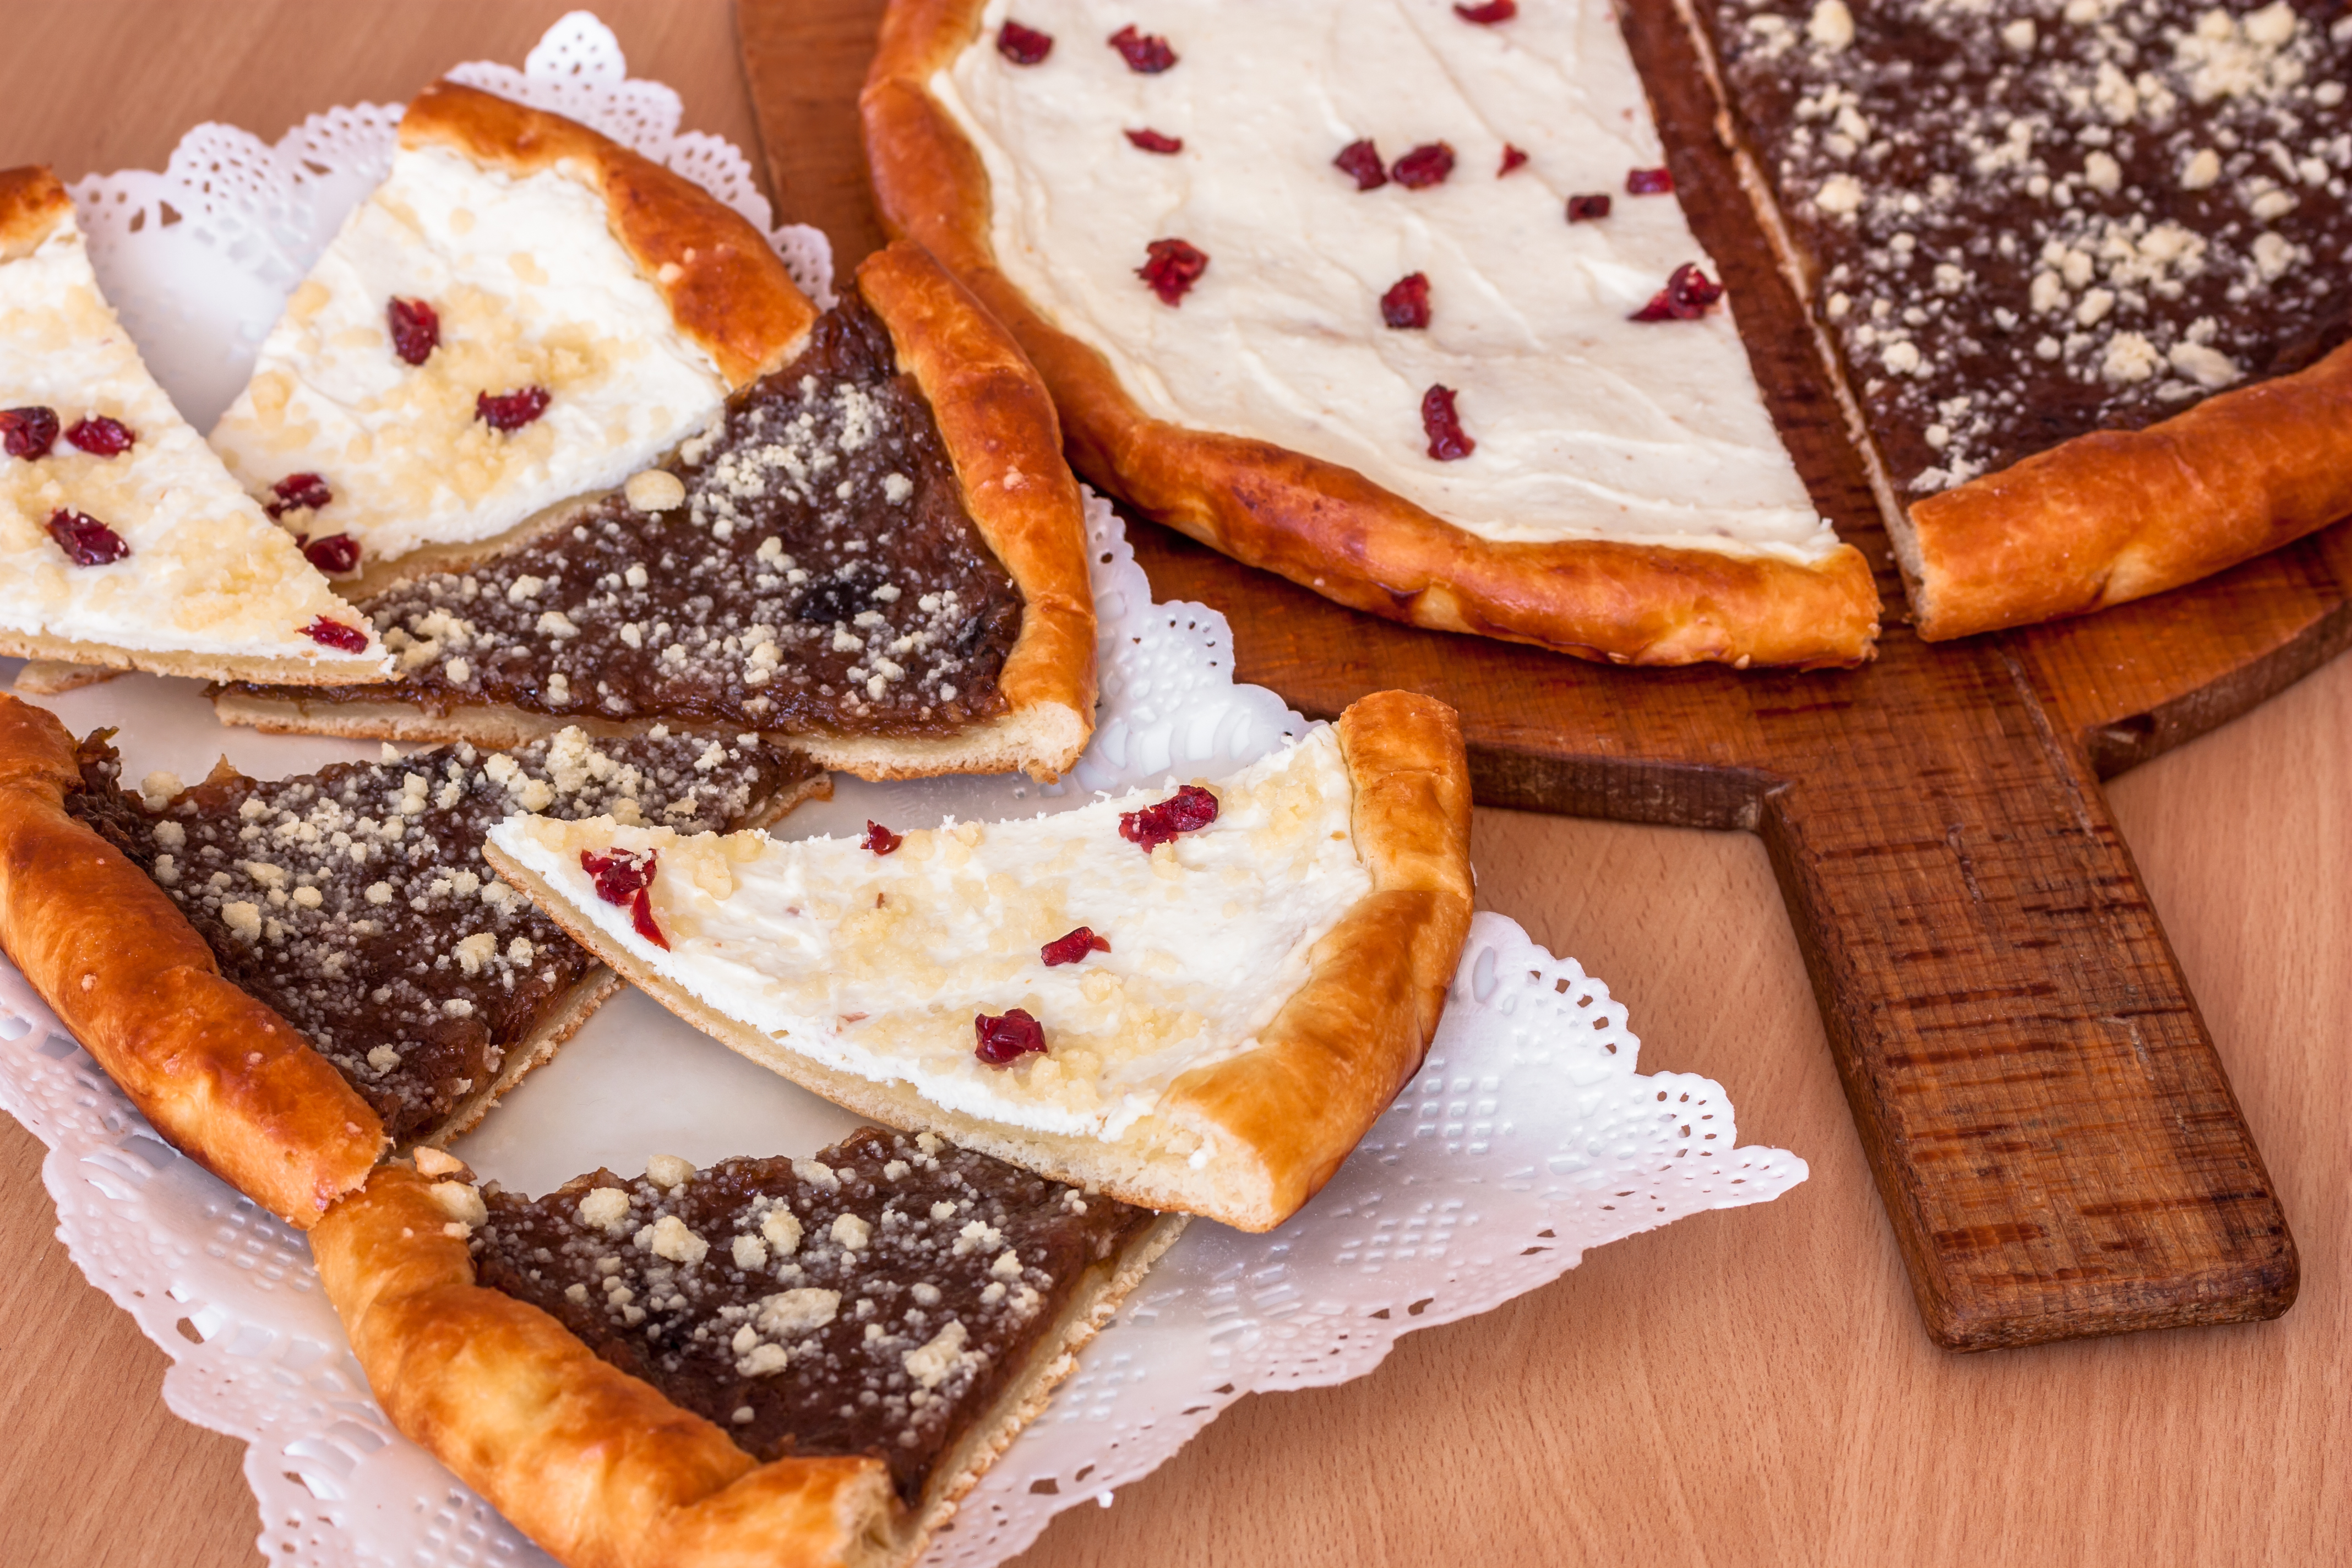 Wallachian frgál: from pastry fail to national specialty